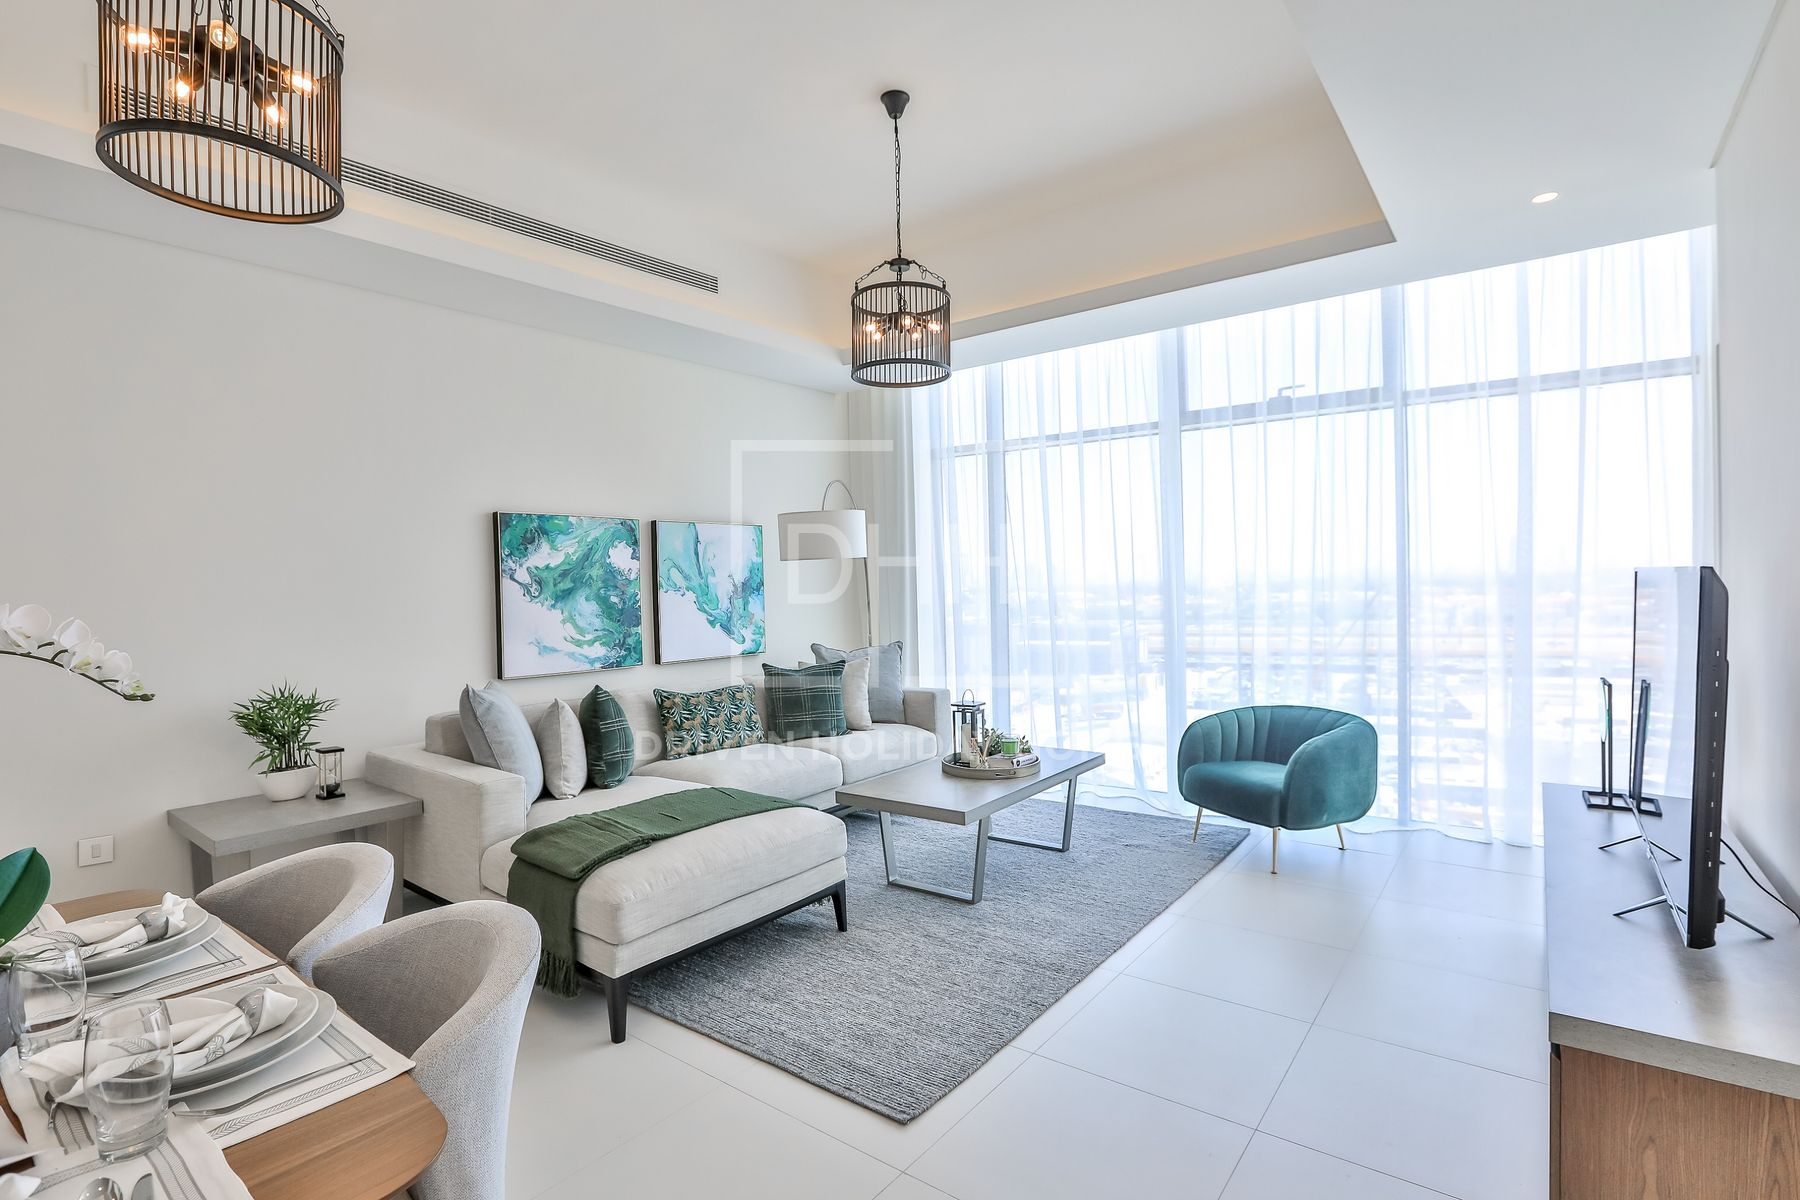 2 Beds For A Price of 1 Bed Mada Residences